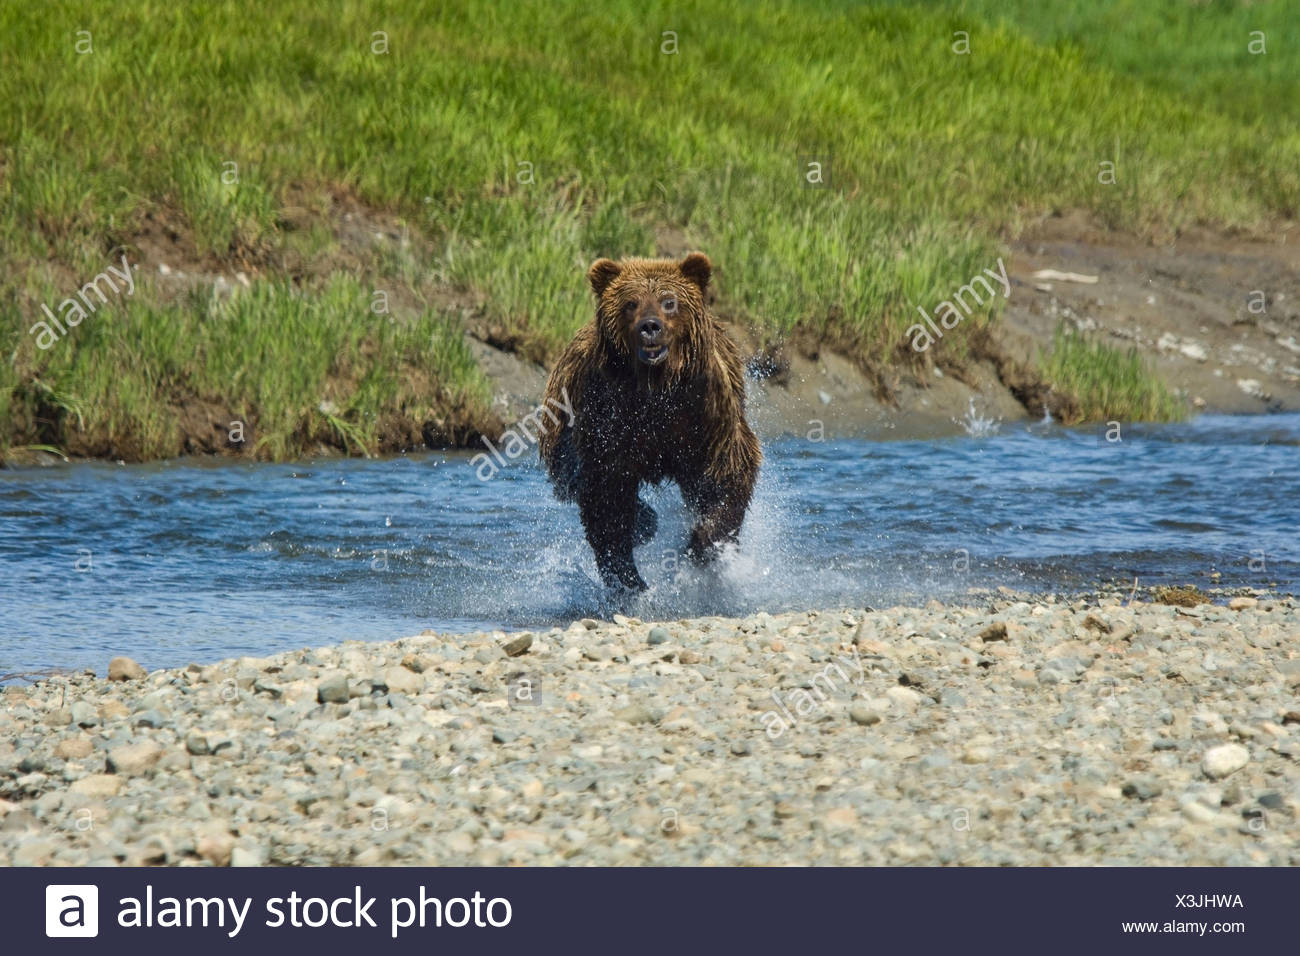 A Brown Bear Charges through the water at Mikfik Creek during Summer in Southwest Alaska. - Stock Image